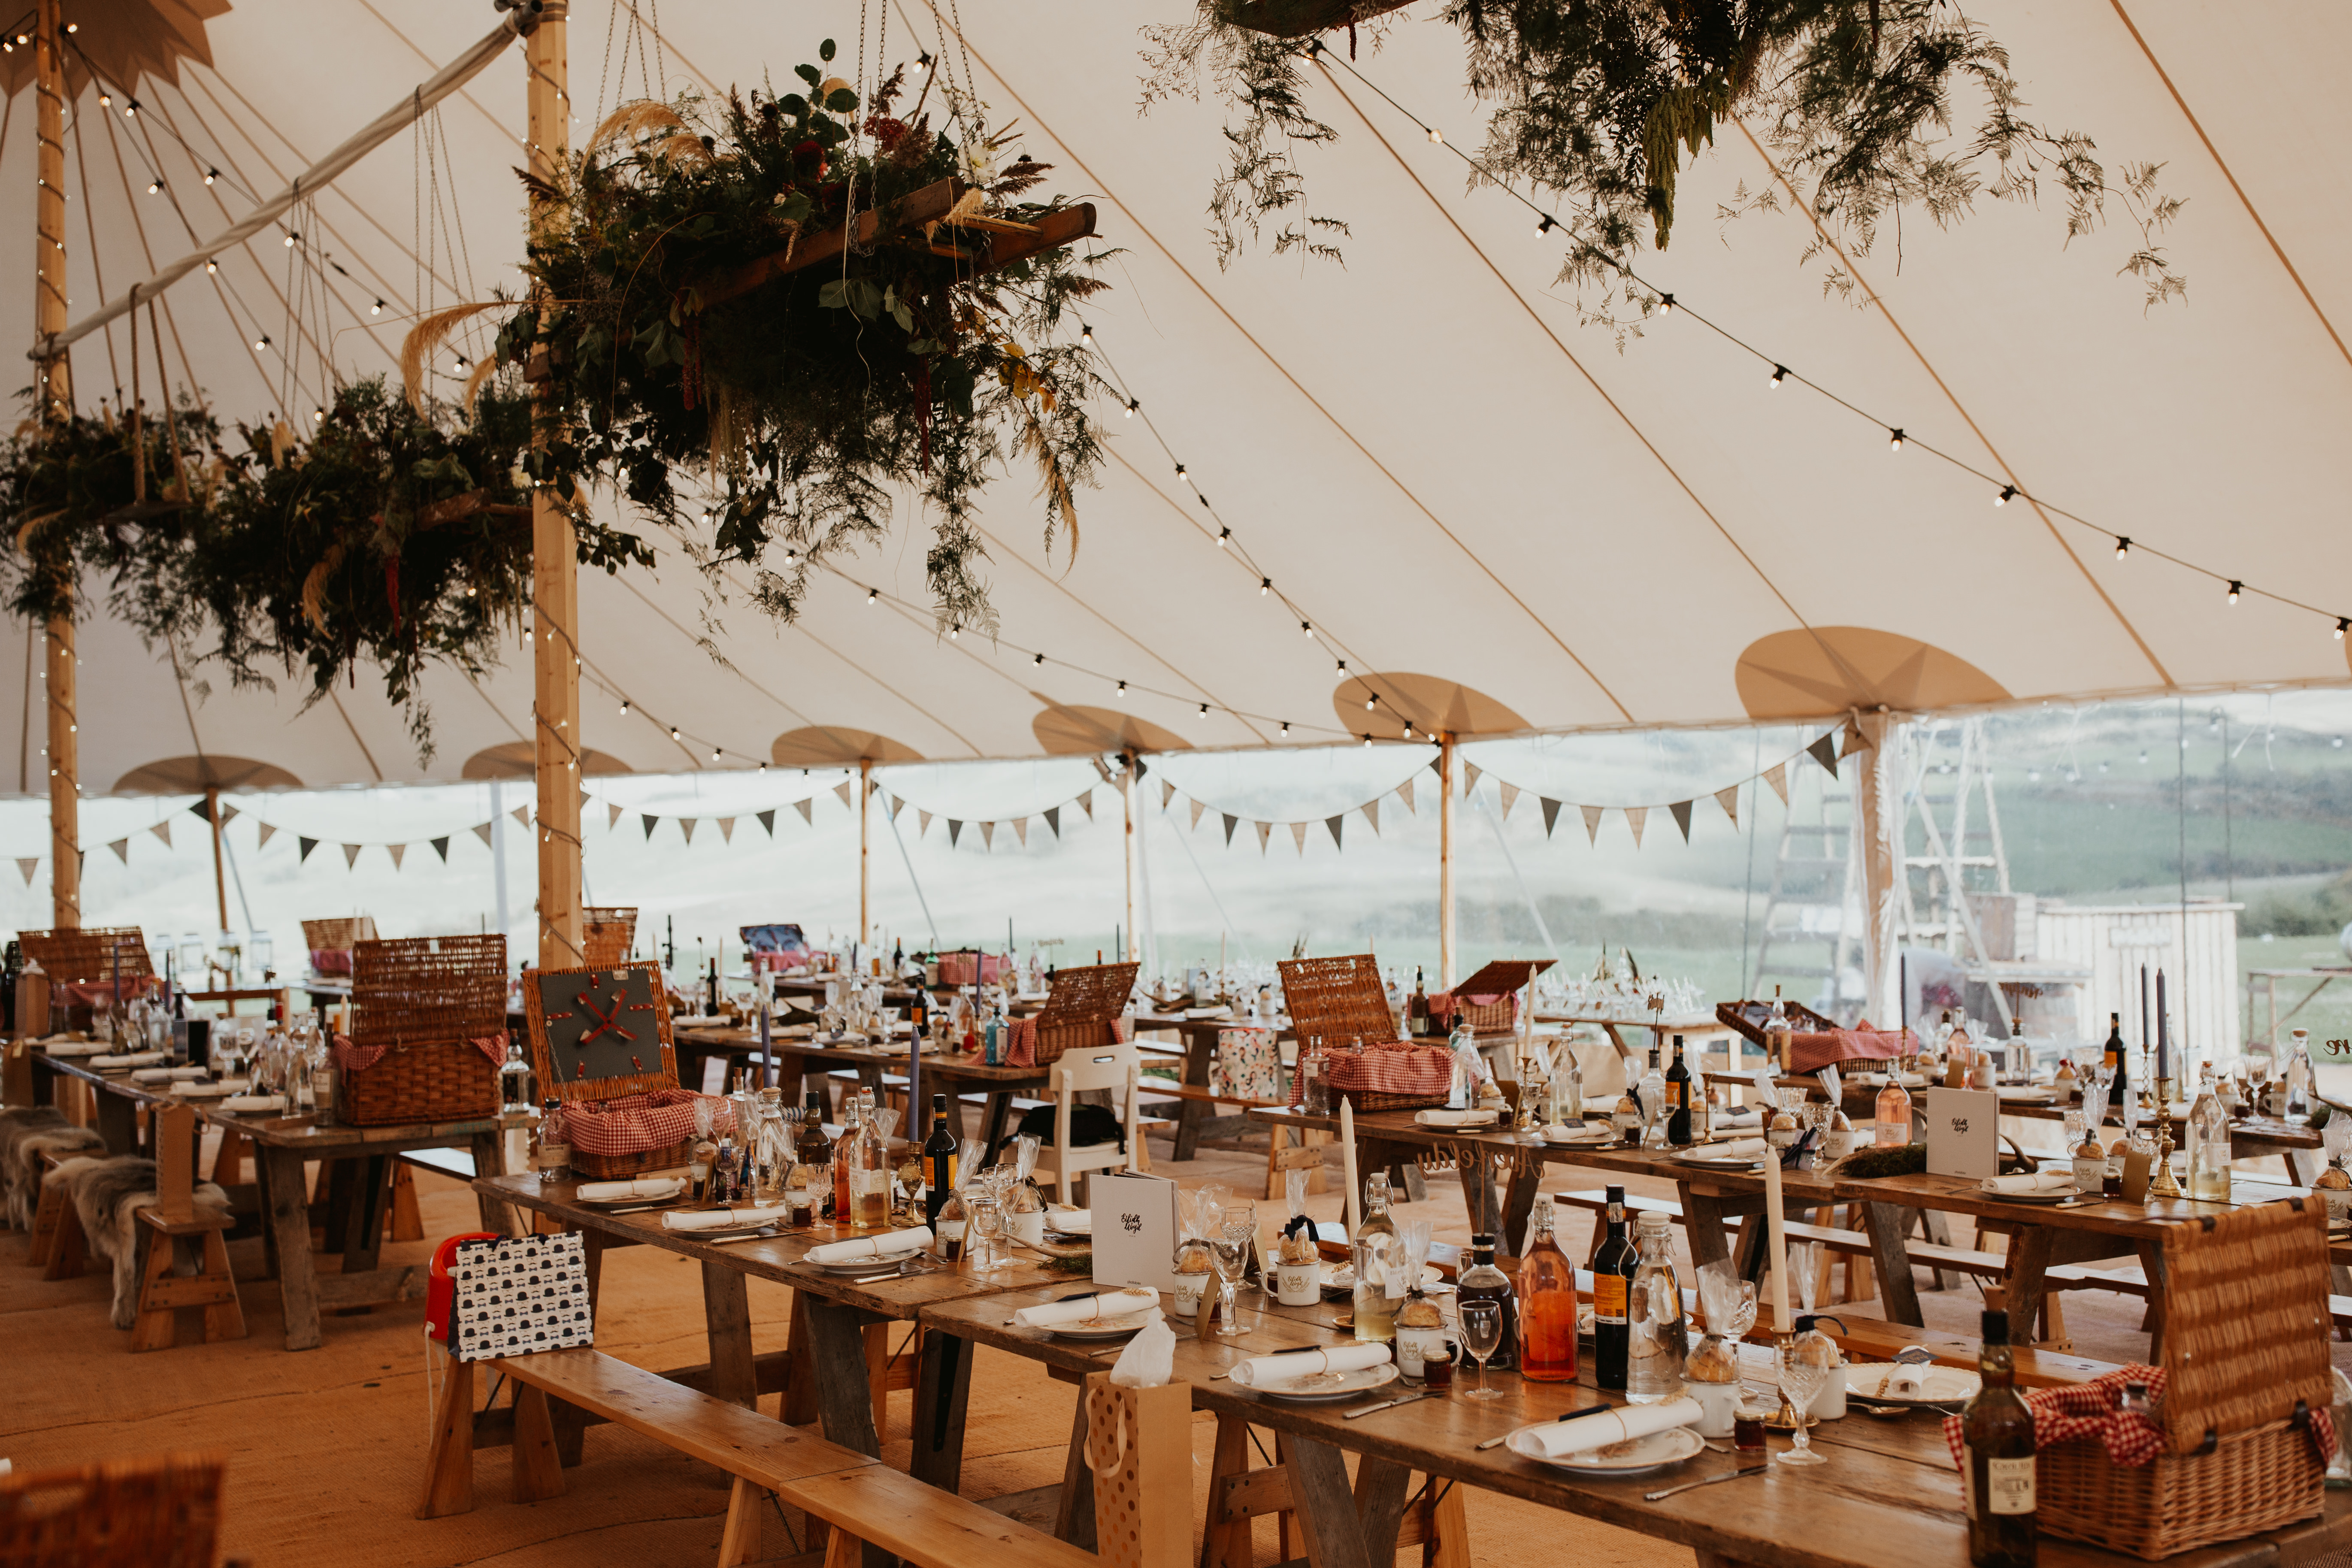 PapaKåta couple Eilidh & Lloyd's Sperry Wedding in Glenfarg, Perthshire captured by Colin Ross Photography- Sperry Tent interior with picnic style wedding breakfast